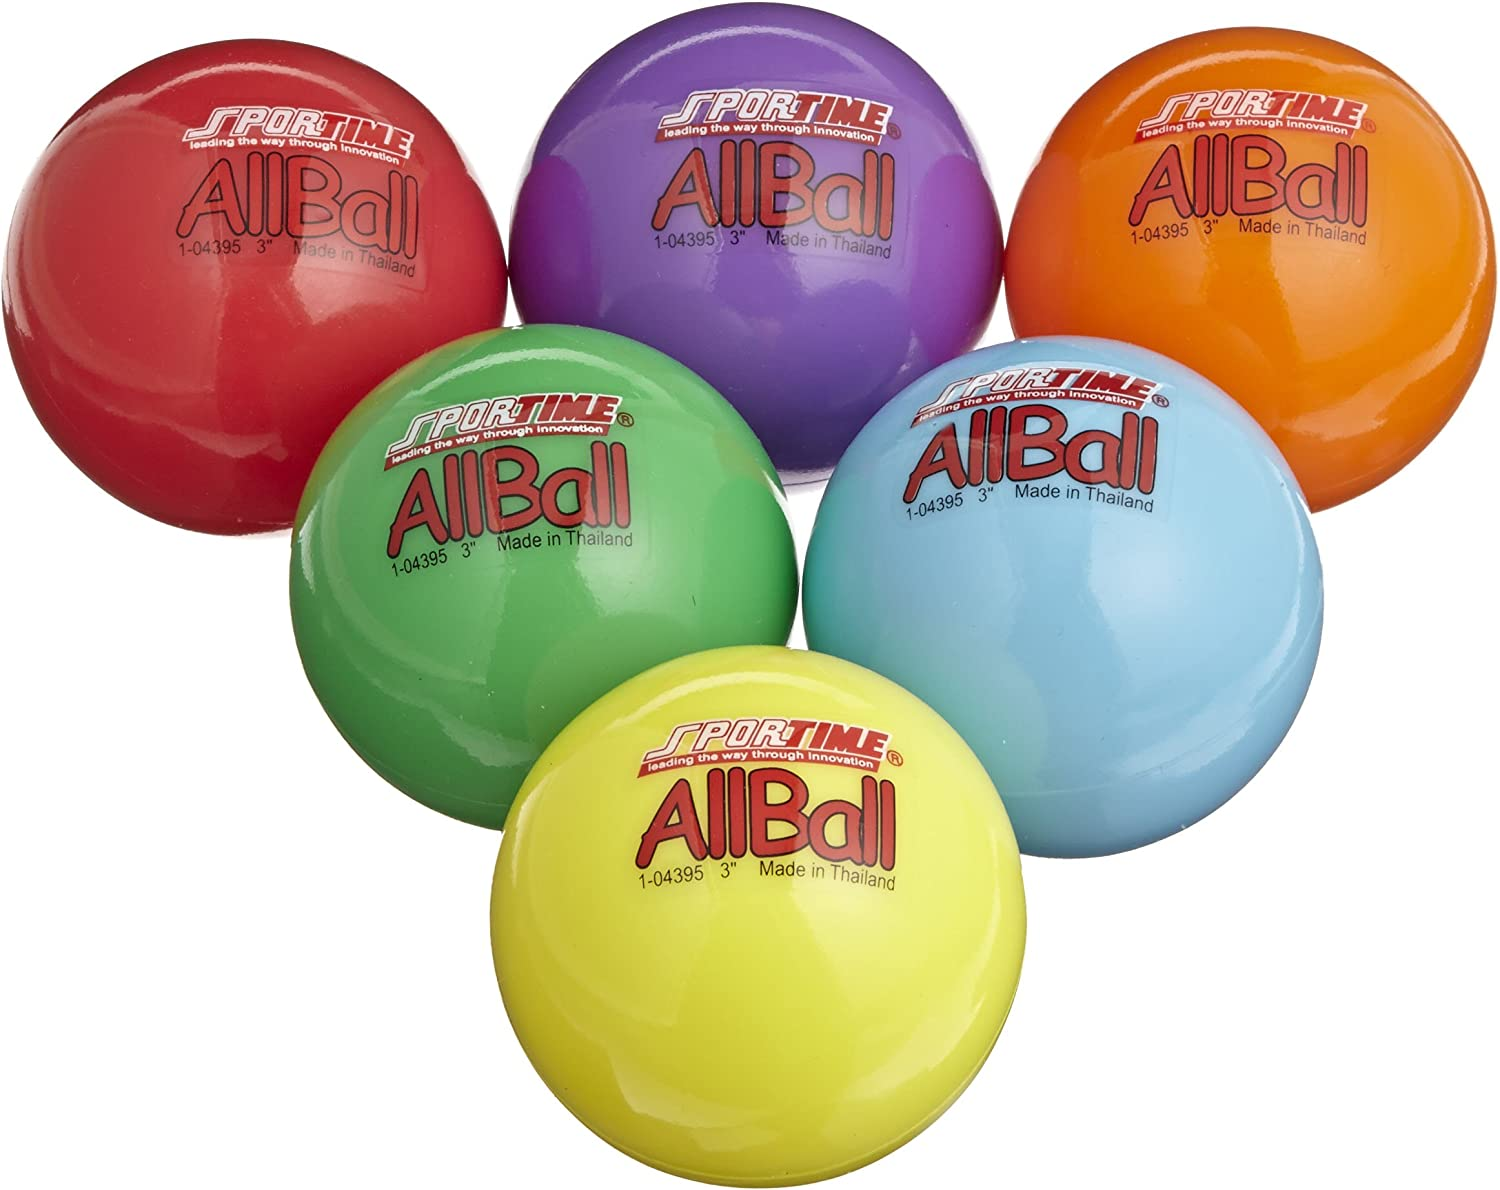 Sportime Multi-Purpose Inflatable All-Balls - 3 inch - Set of 6 - Assorted colors